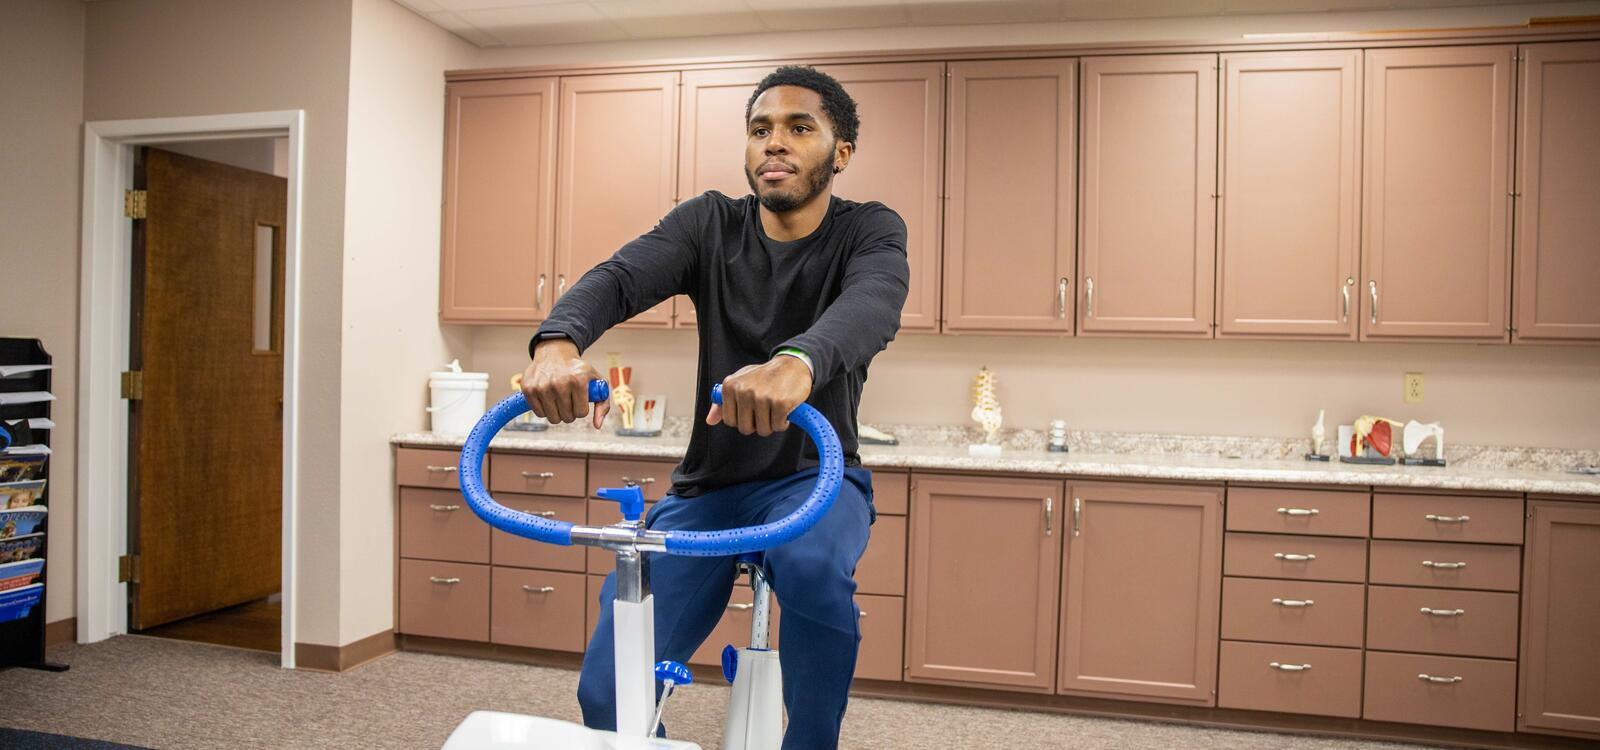 Student using exercise machine in kinesiology building.